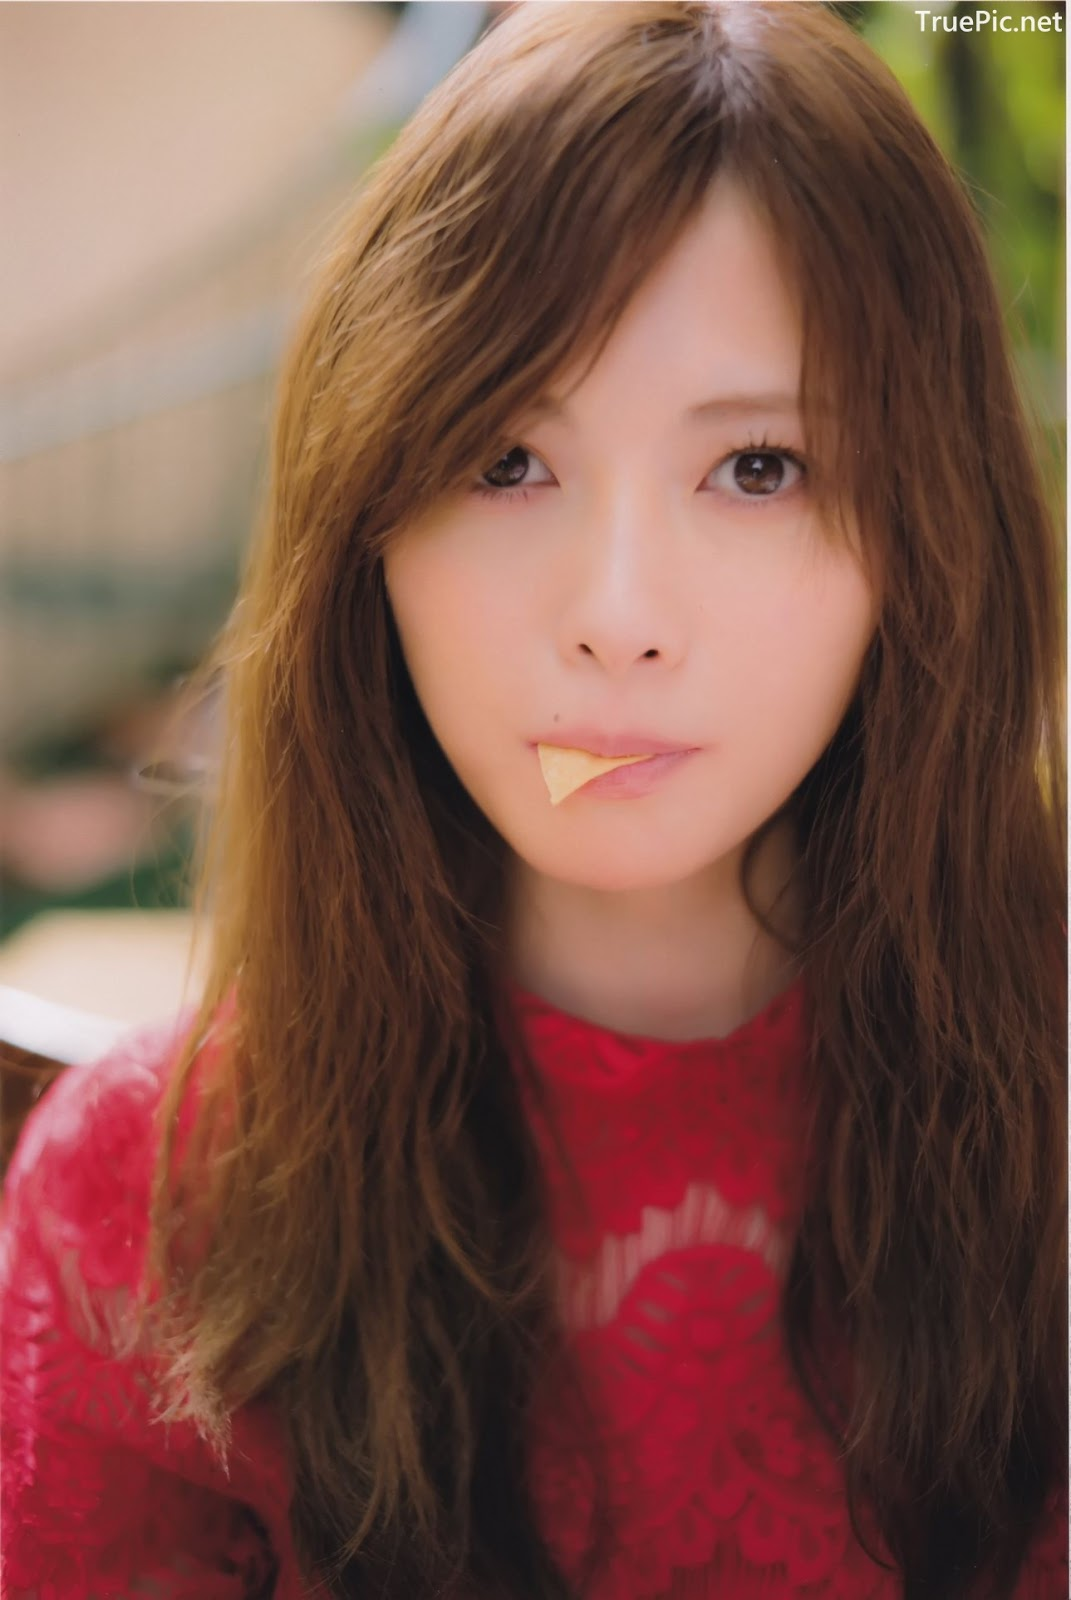 Image Japanese Singer And Model - Mai Shiraishi - Charming Beauty Of Angel - TruePic.net - Picture-10